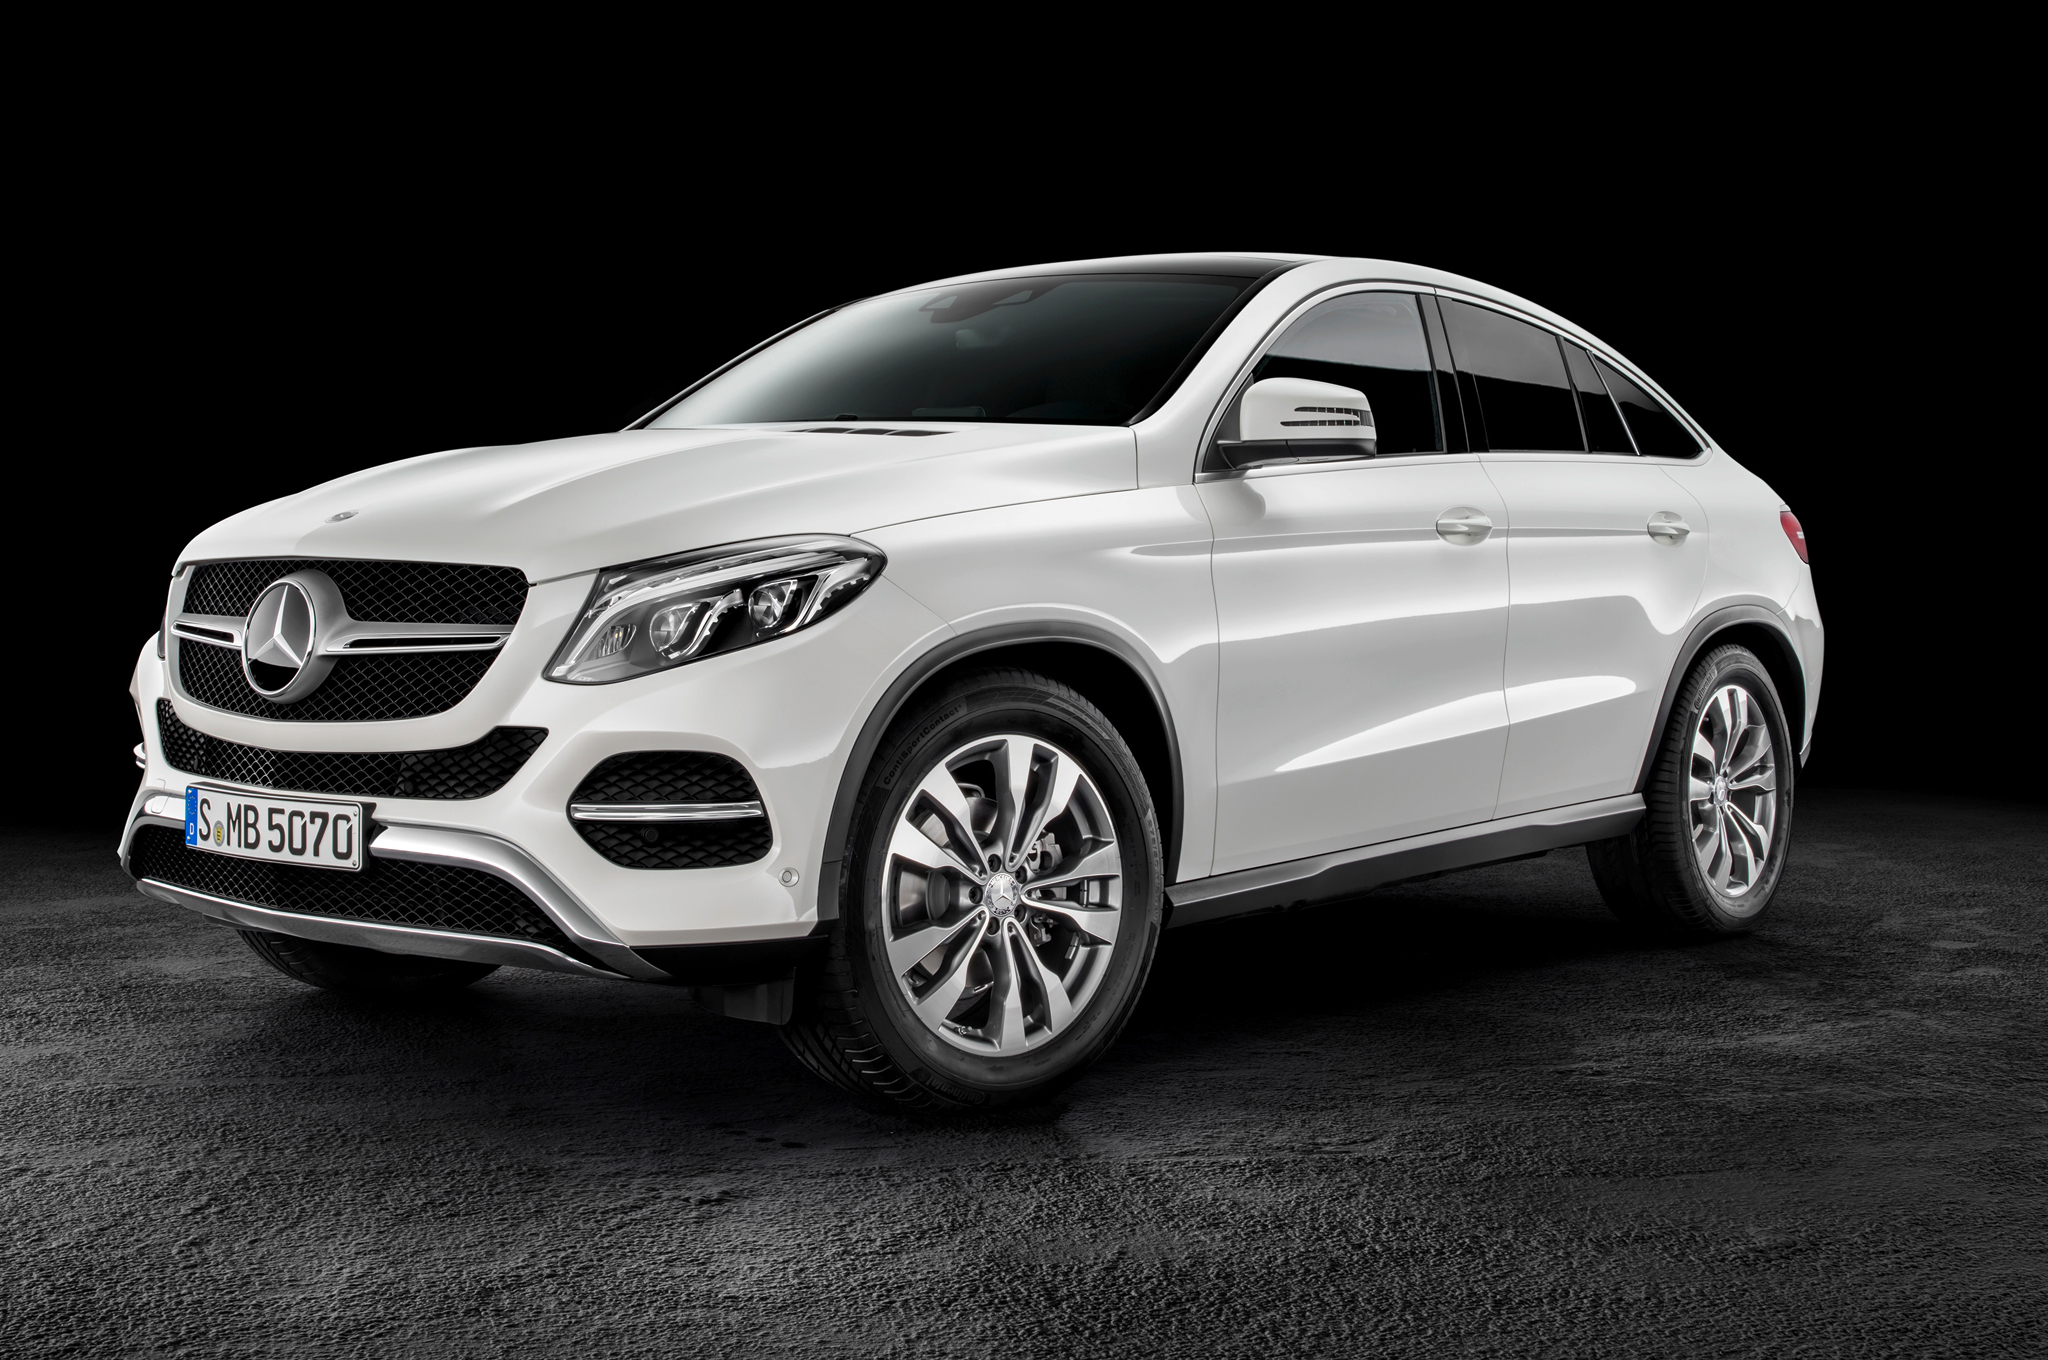 Featured Image of 2016 Mercedes AMG GLE63 S 4MATIC